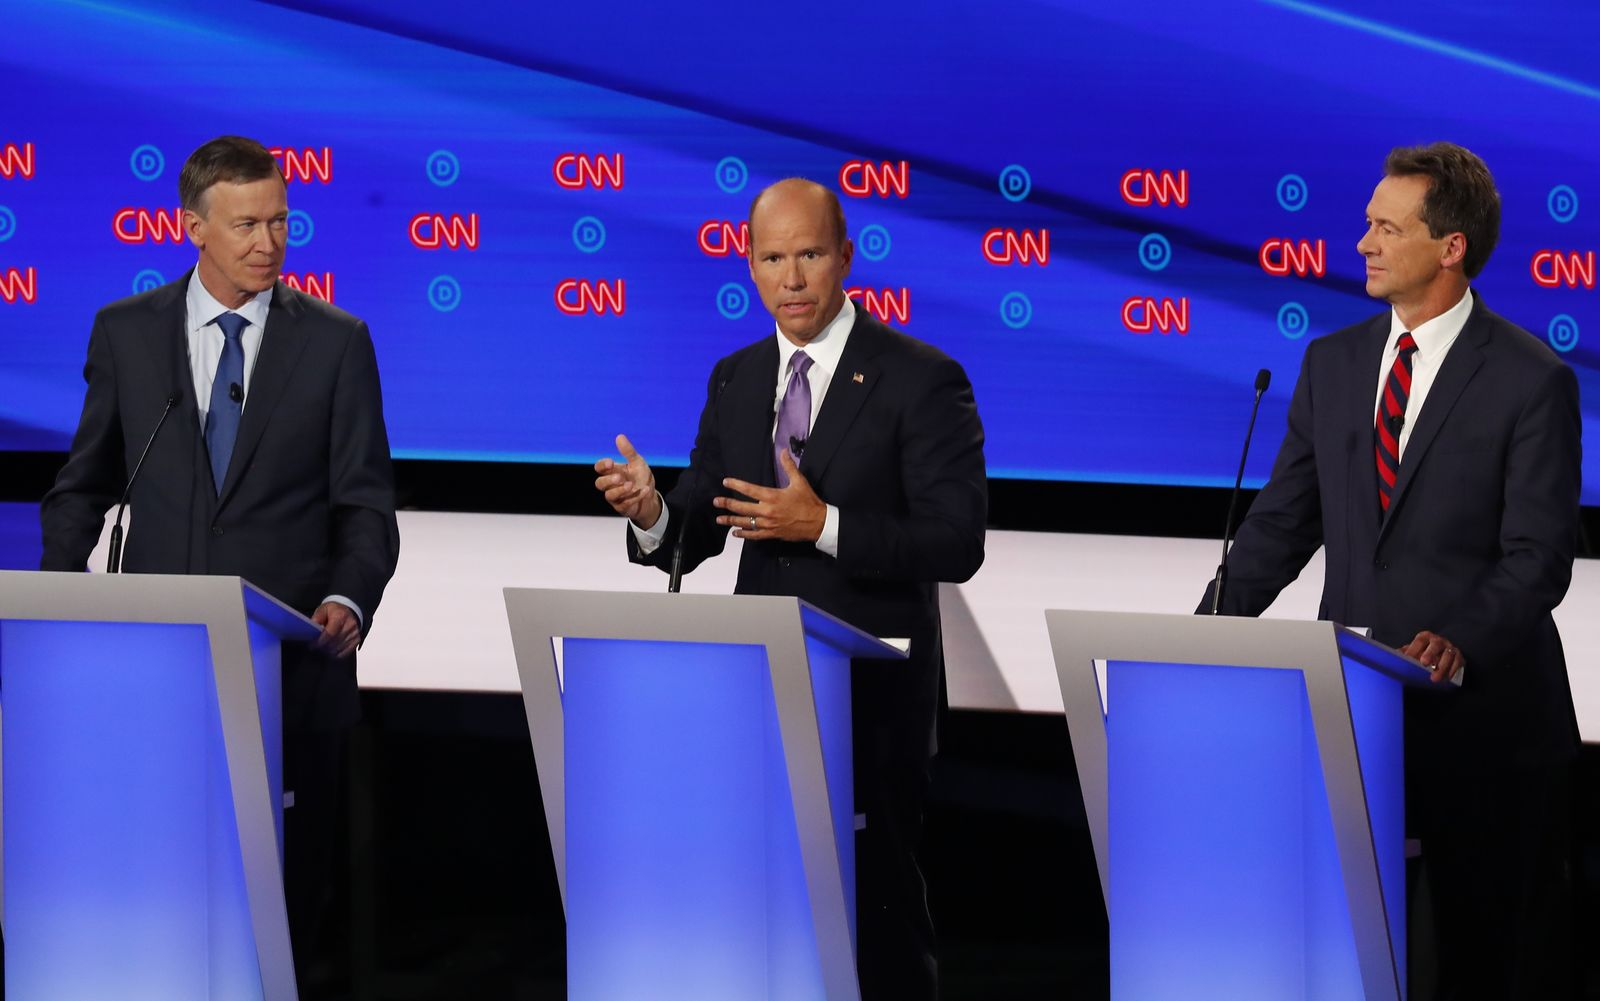 Former Colorado Gov. John Hickenlooper, former Maryland Rep. John Delaney and Montana Gov. Steve Bullock participate in the first of two Democratic presidential primary debates hosted by CNN Tuesday, July 30, 2019, in the Fox Theatre in Detroit. (AP Photo/Paul Sancya)